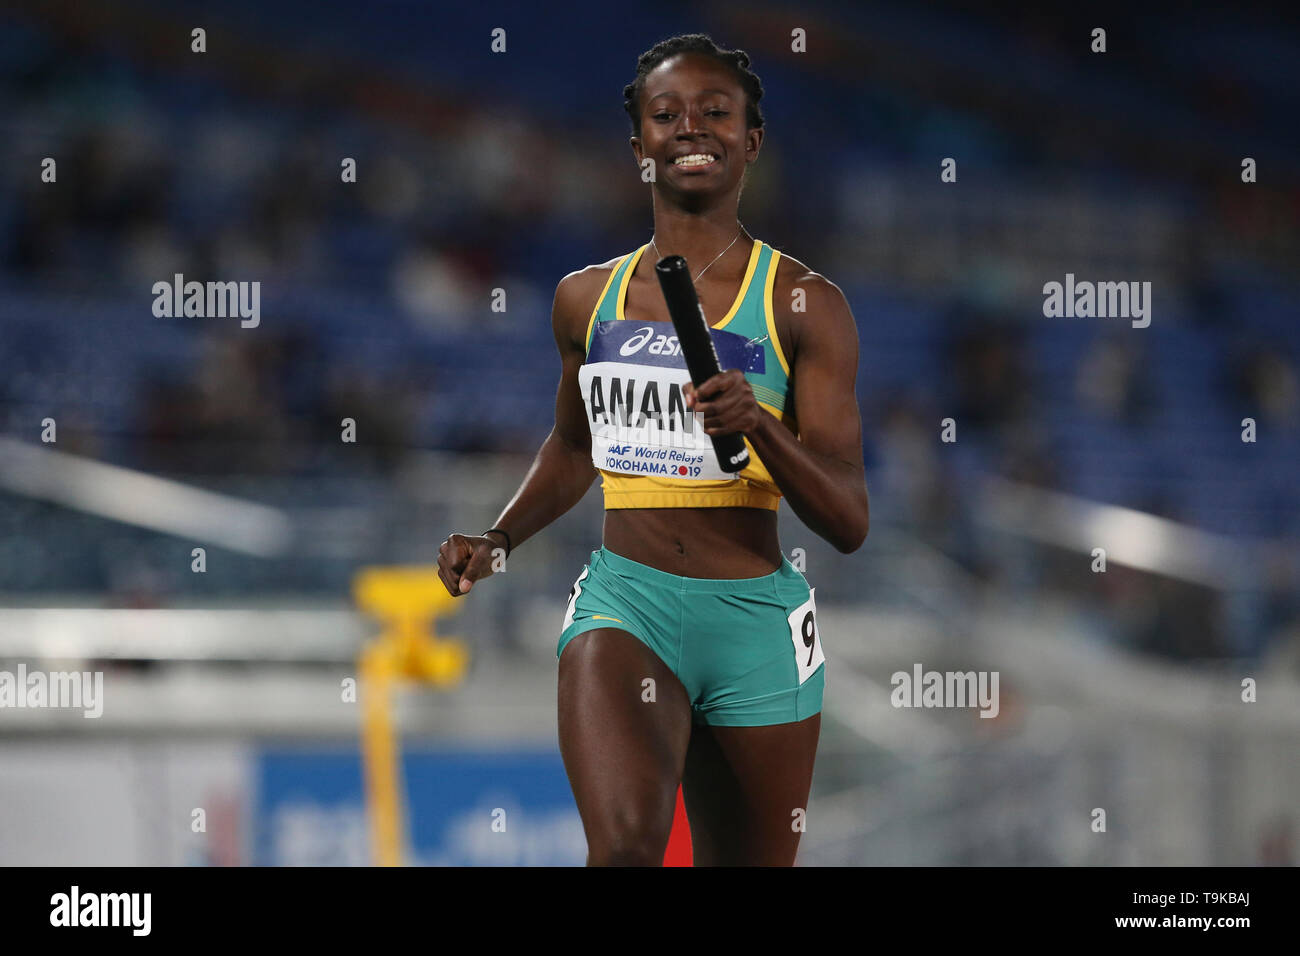 YOKOHAMA, JAPAN - MAY 10: Naa Anang of Australia during Day 1 of the 2019 IAAF World Relay Championships at the Nissan Stadium on Saturday May 11, 2019 in Yokohama, Japan. (Photo by Roger Sedres for the IAAF) - Stock Image